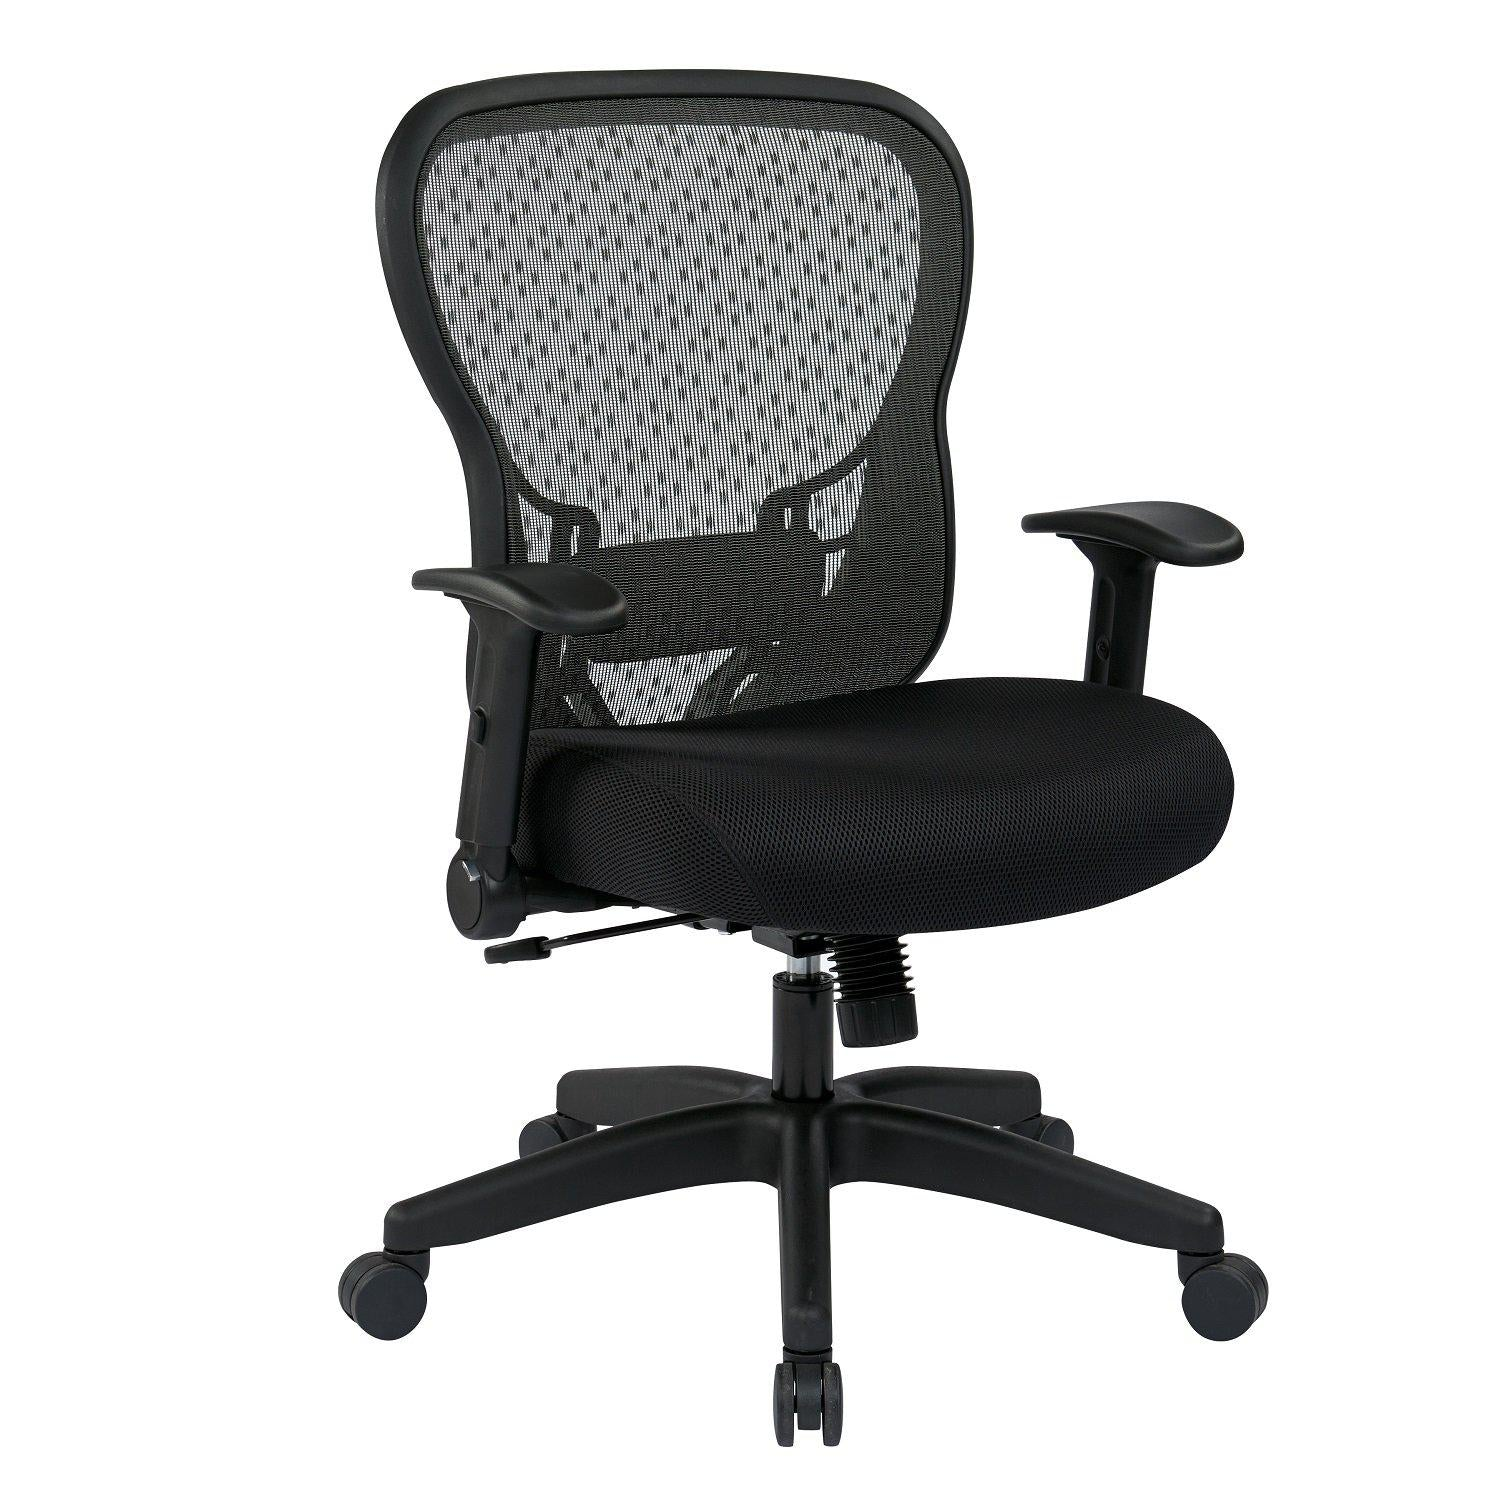 Deluxe R2 SpaceGrid Back Chair with Memory Foam Mesh Seat